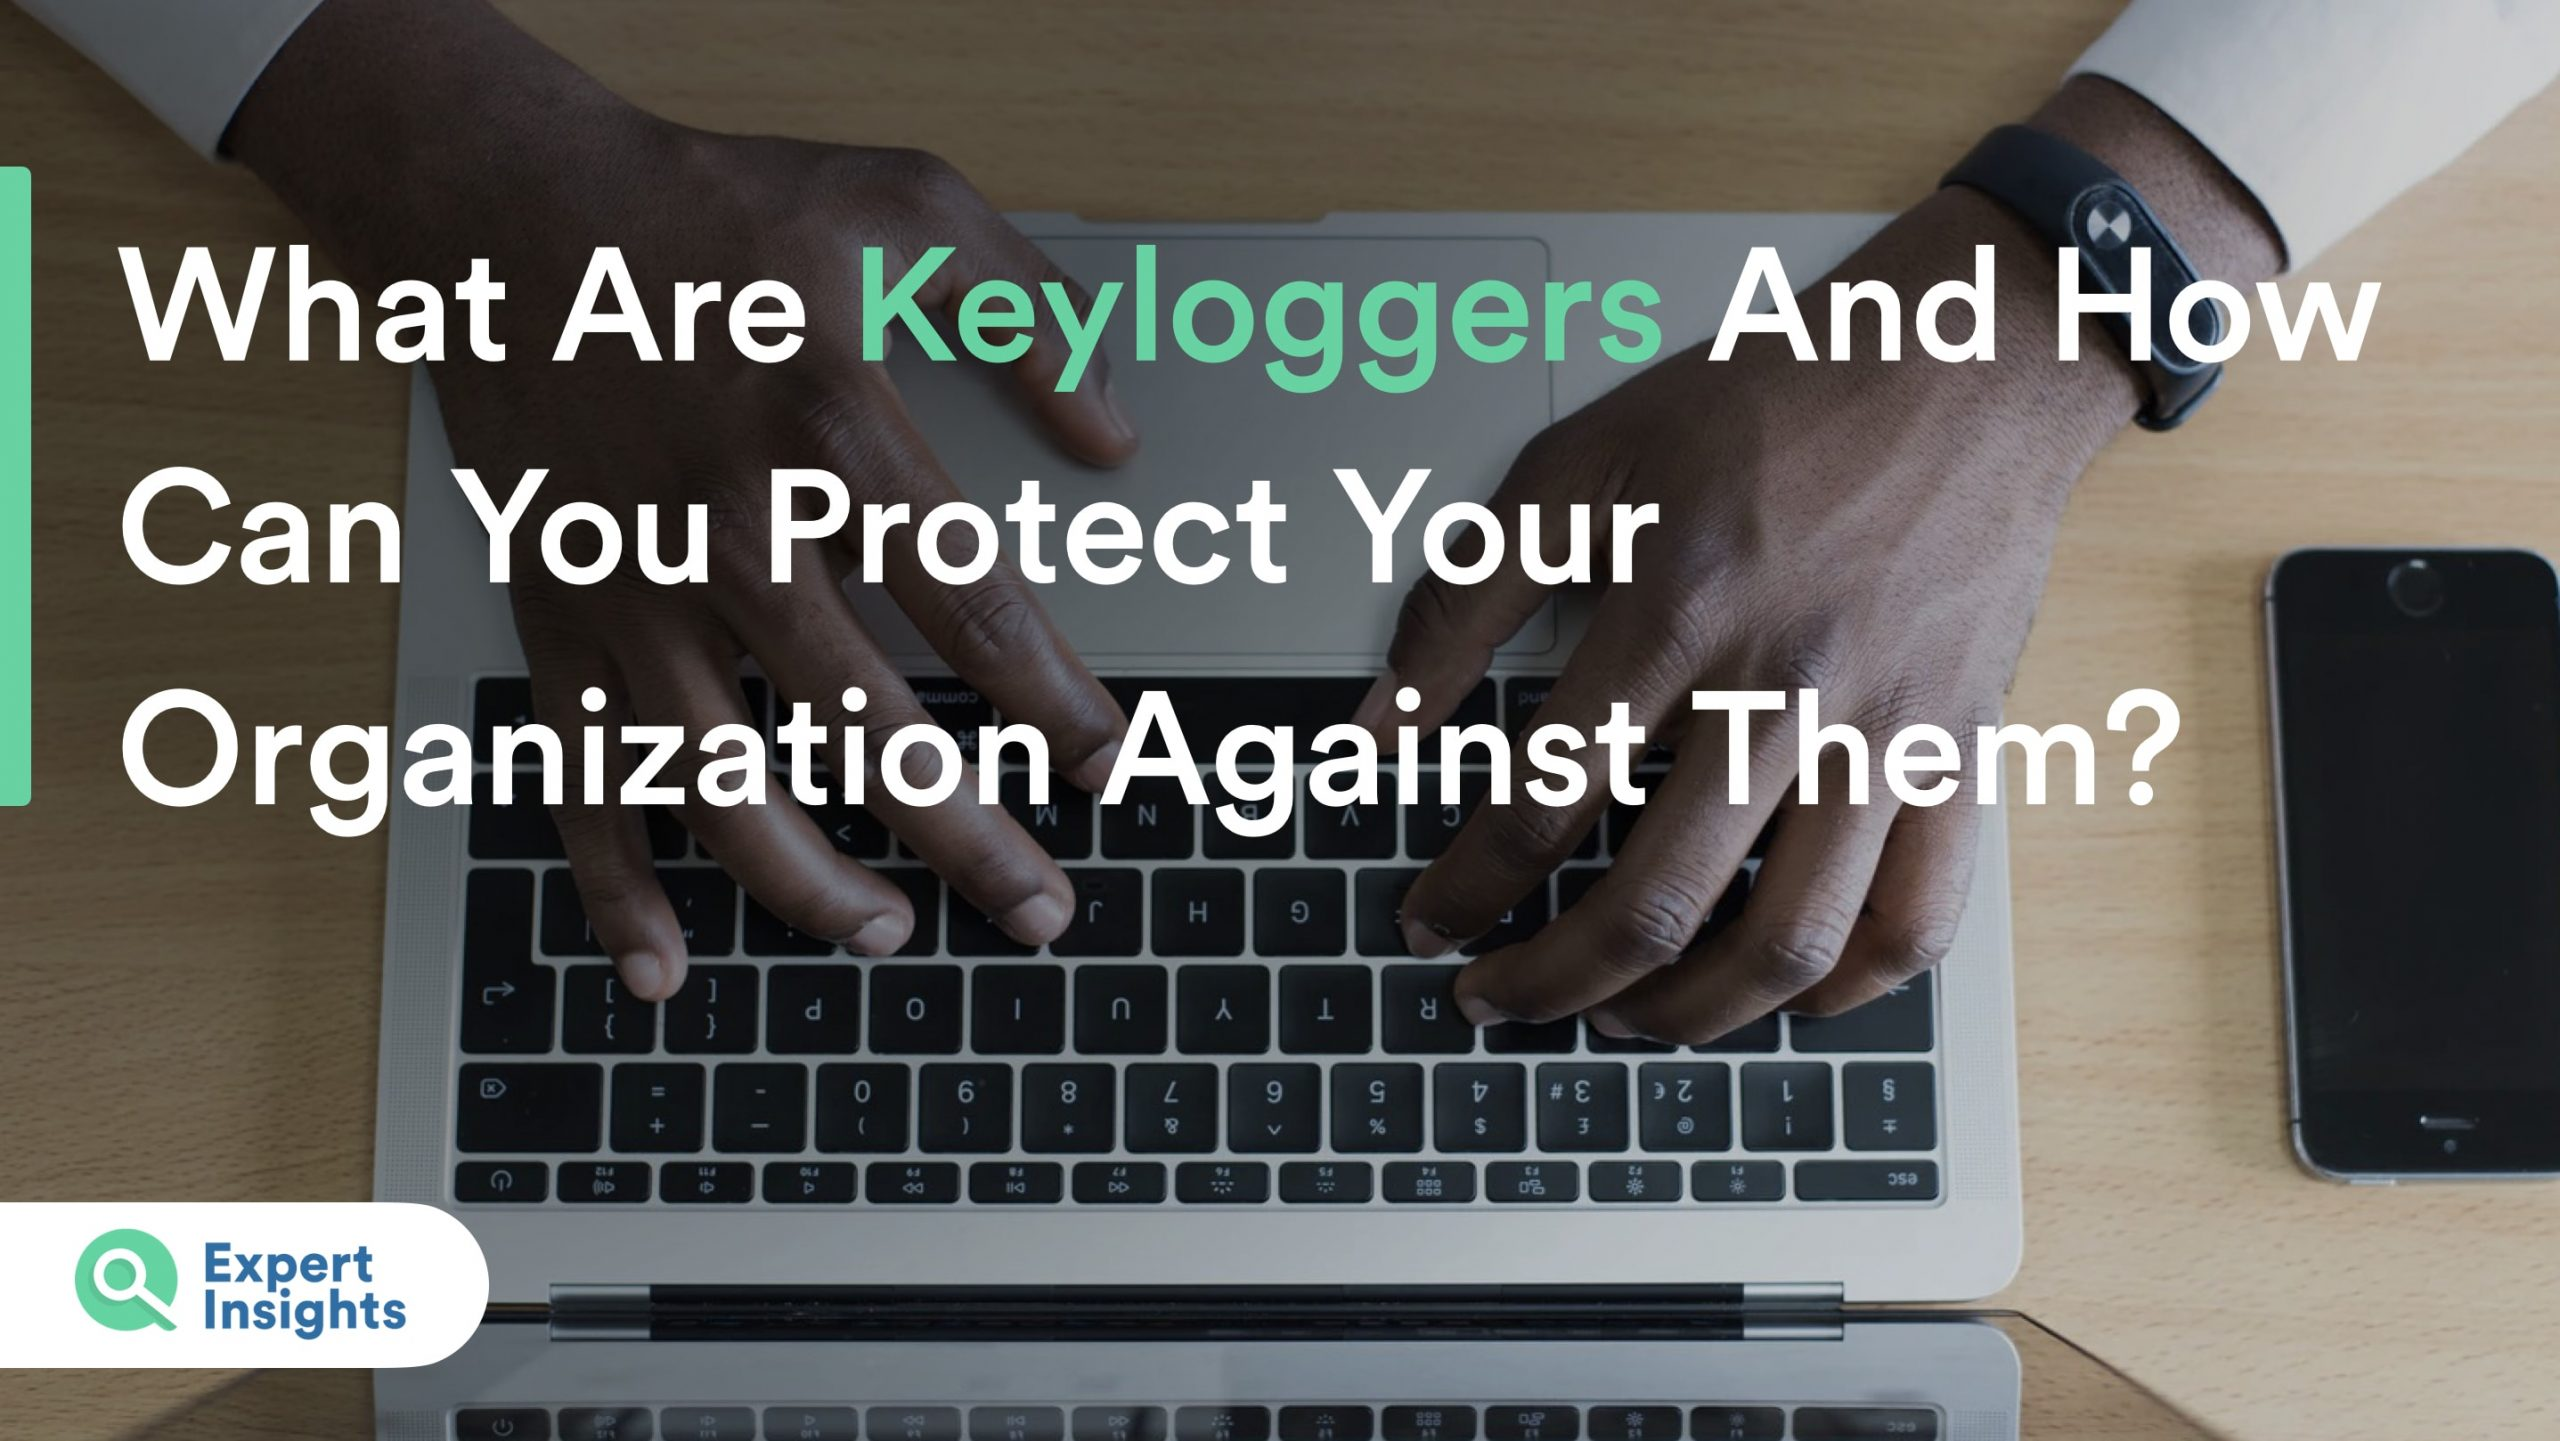 What Are Keyloggers And How Can You Defend Your Organization Against Them?